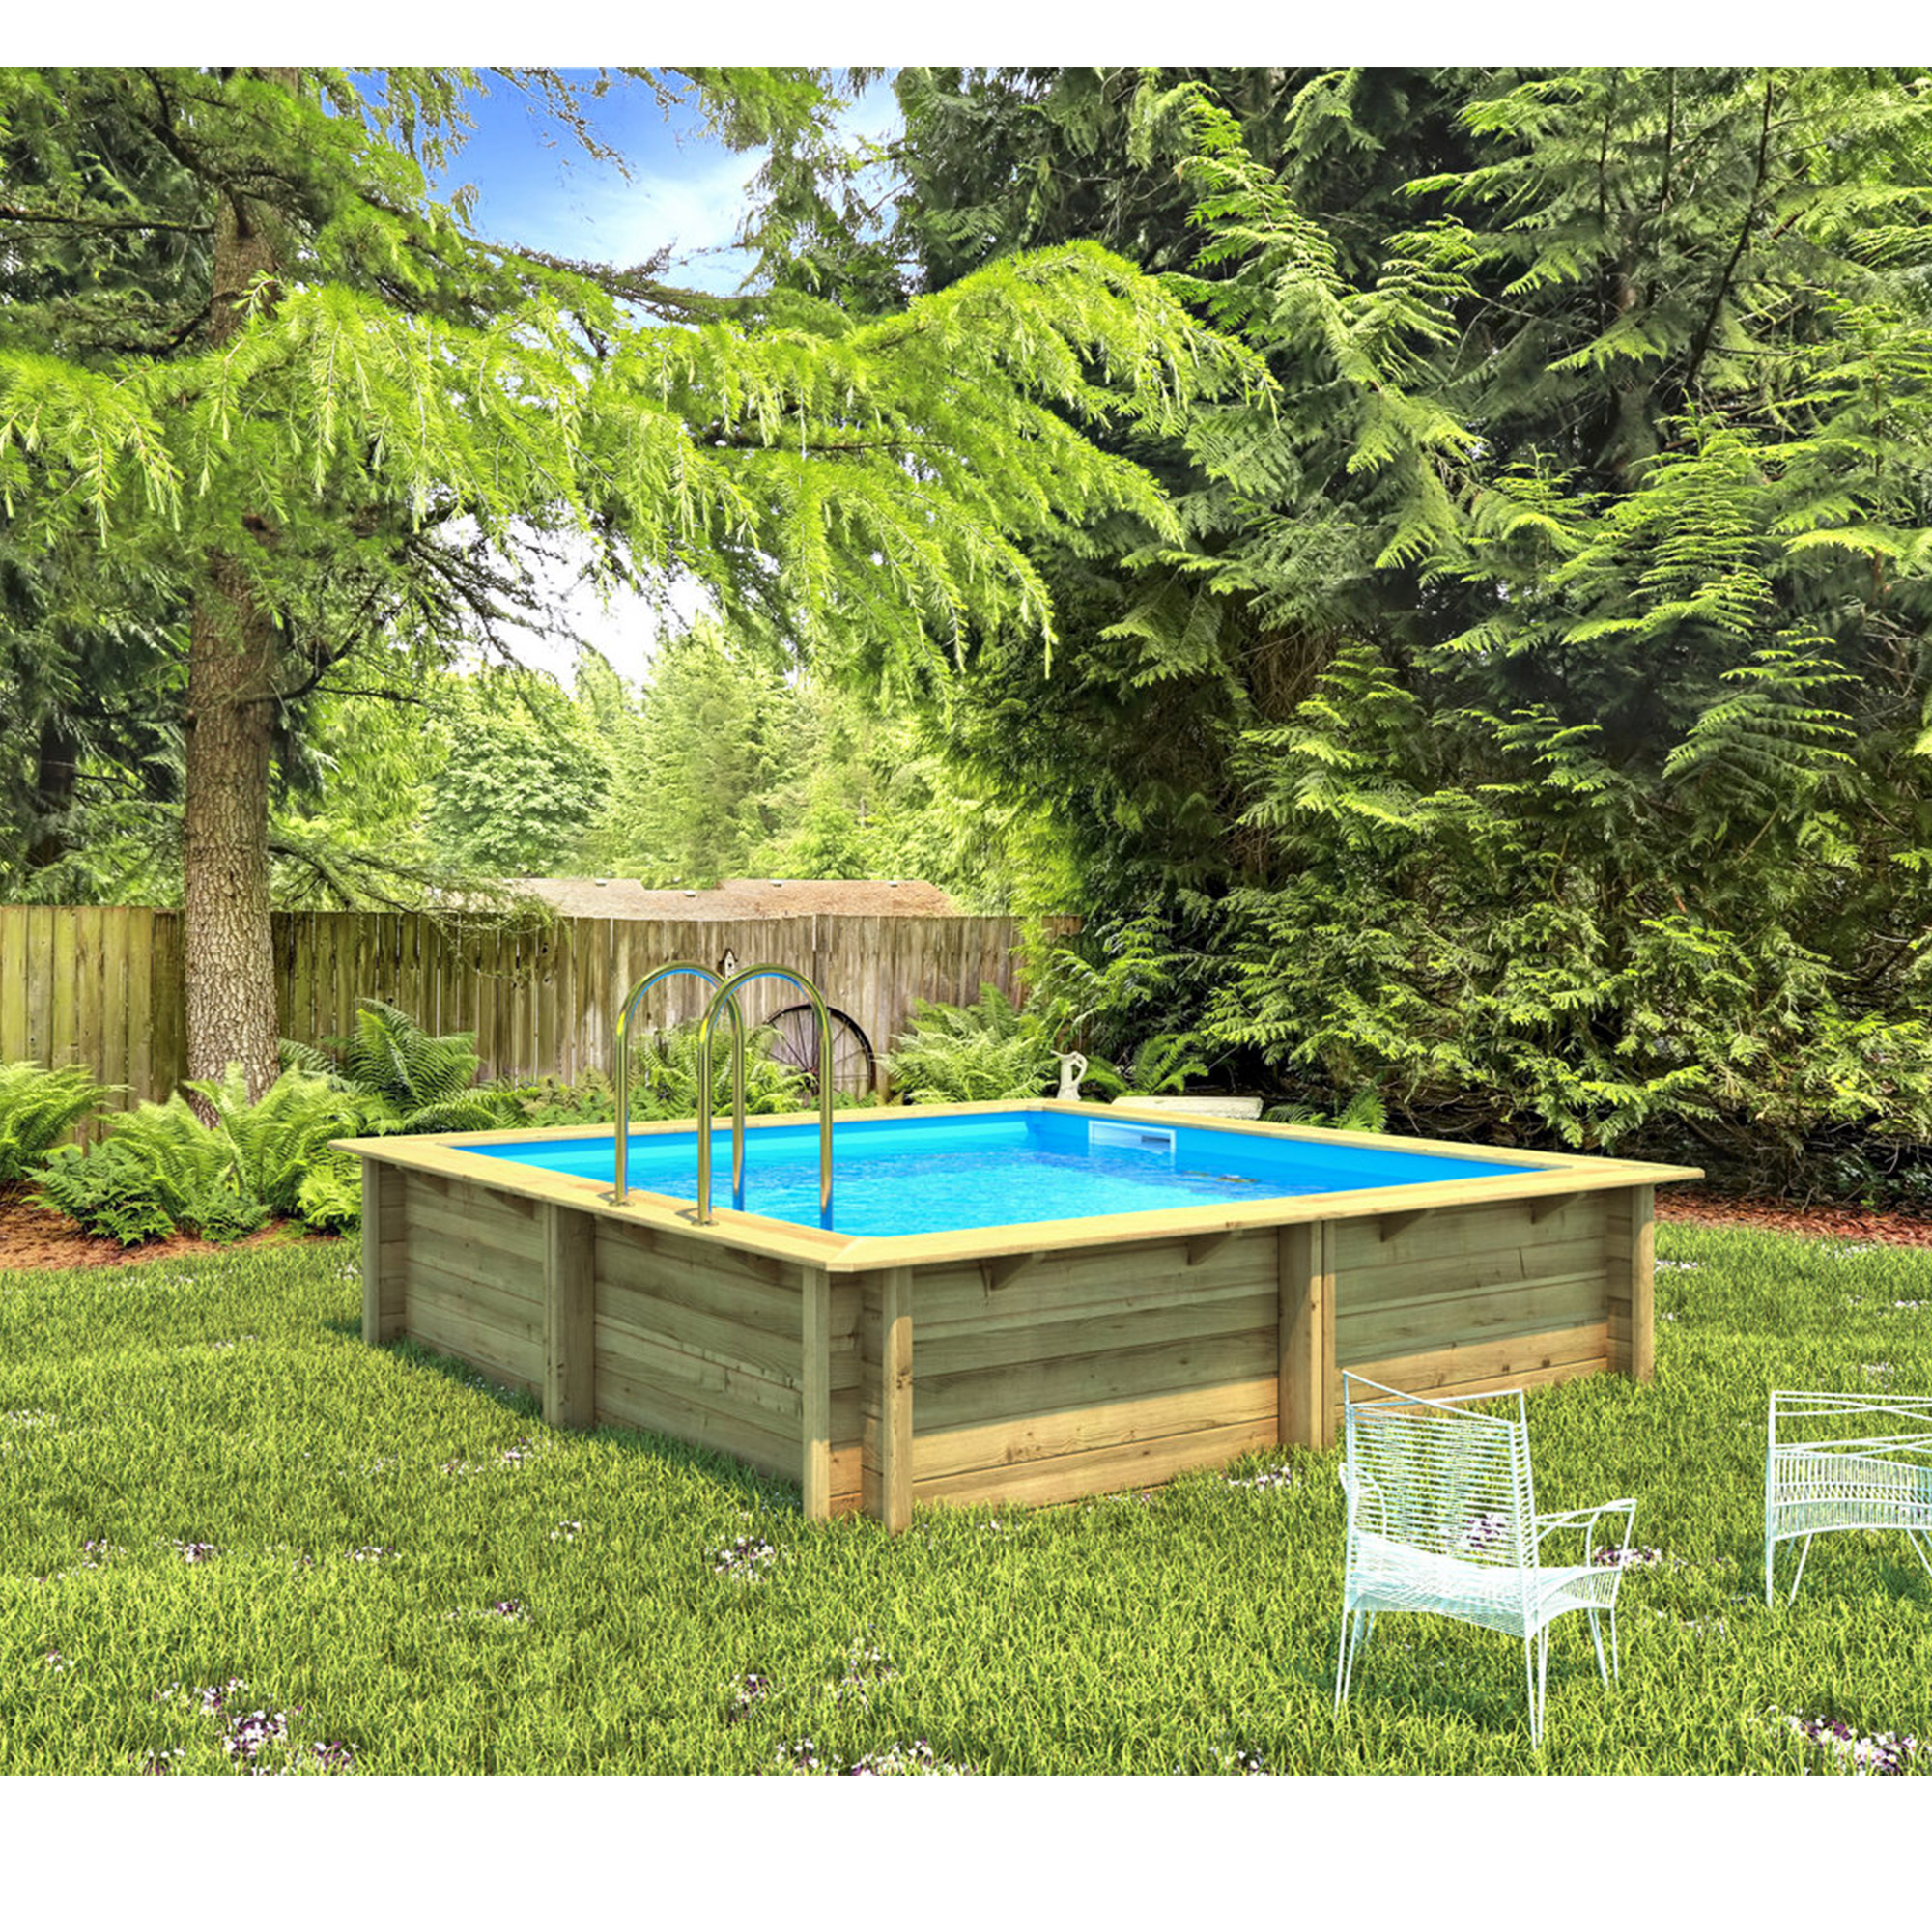 Piscine bois carr e hors sol semi enterr e enterr e for Piscine carree semi enterree